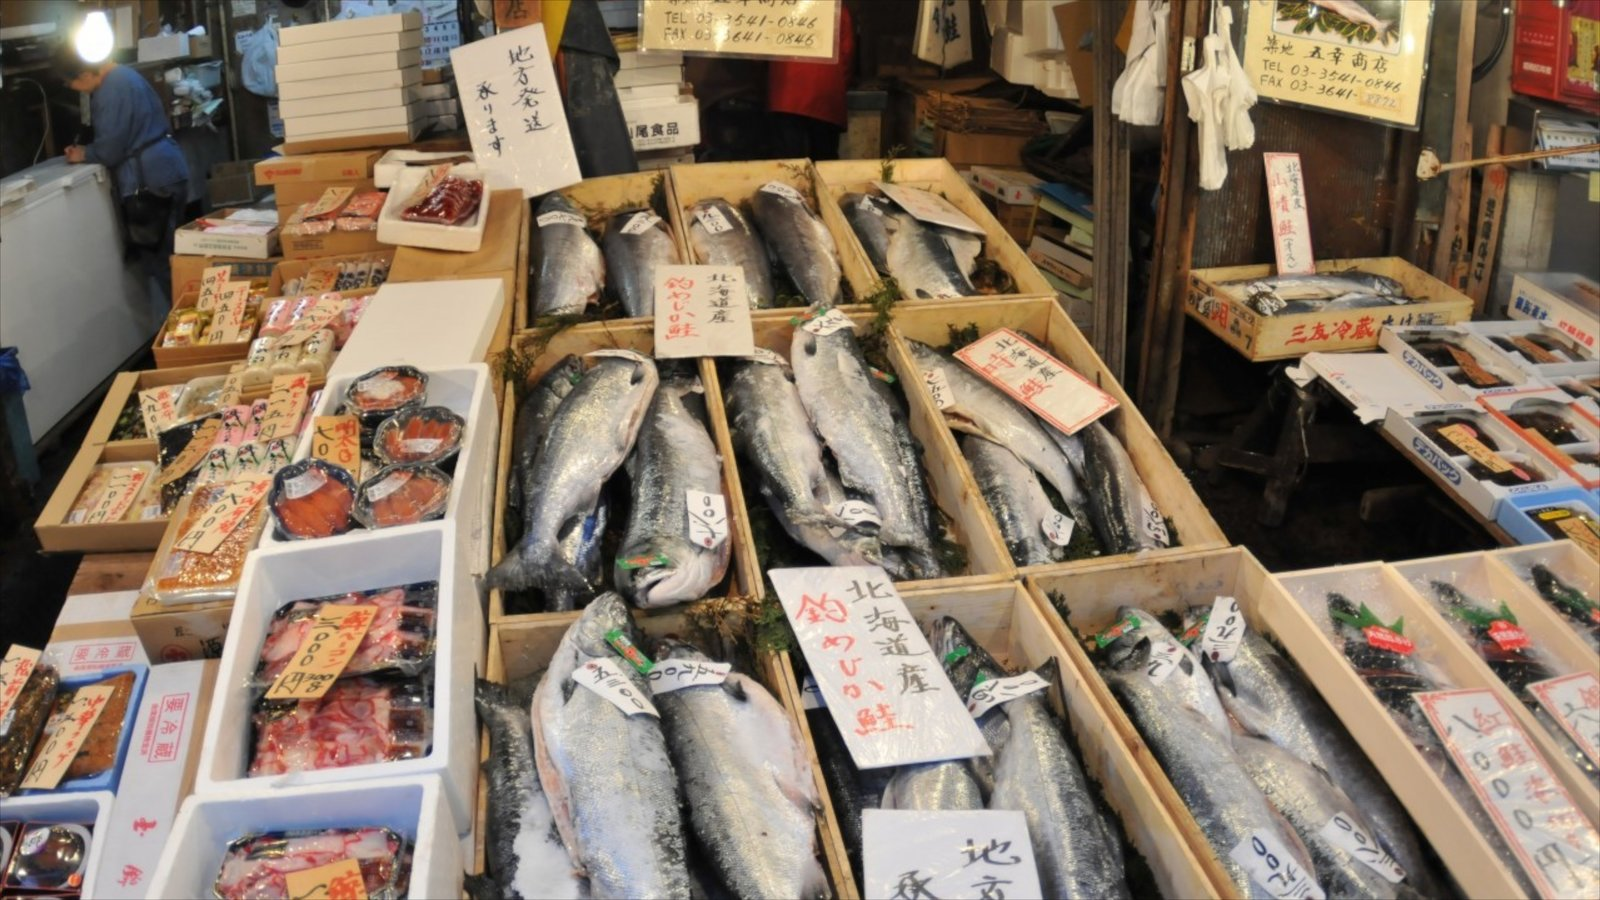 Tsukiji Fish Market which includes markets and marine life